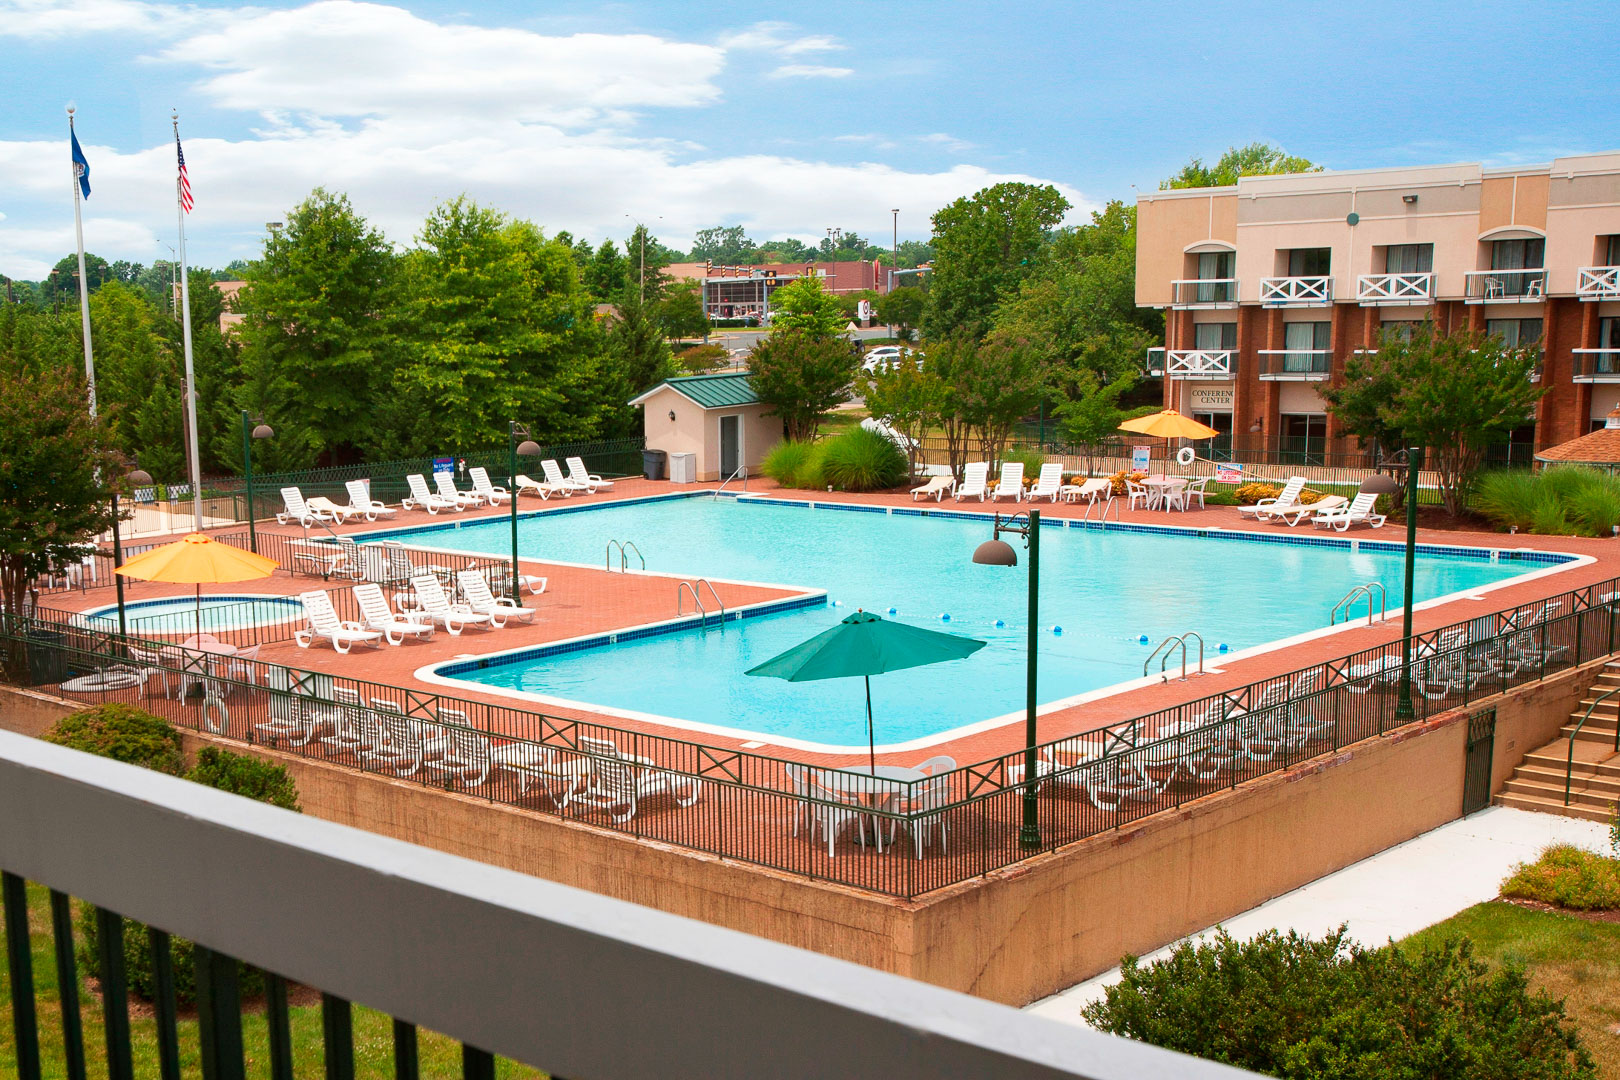 Pool area at Fredericksburg Hospitality House and Conference Center